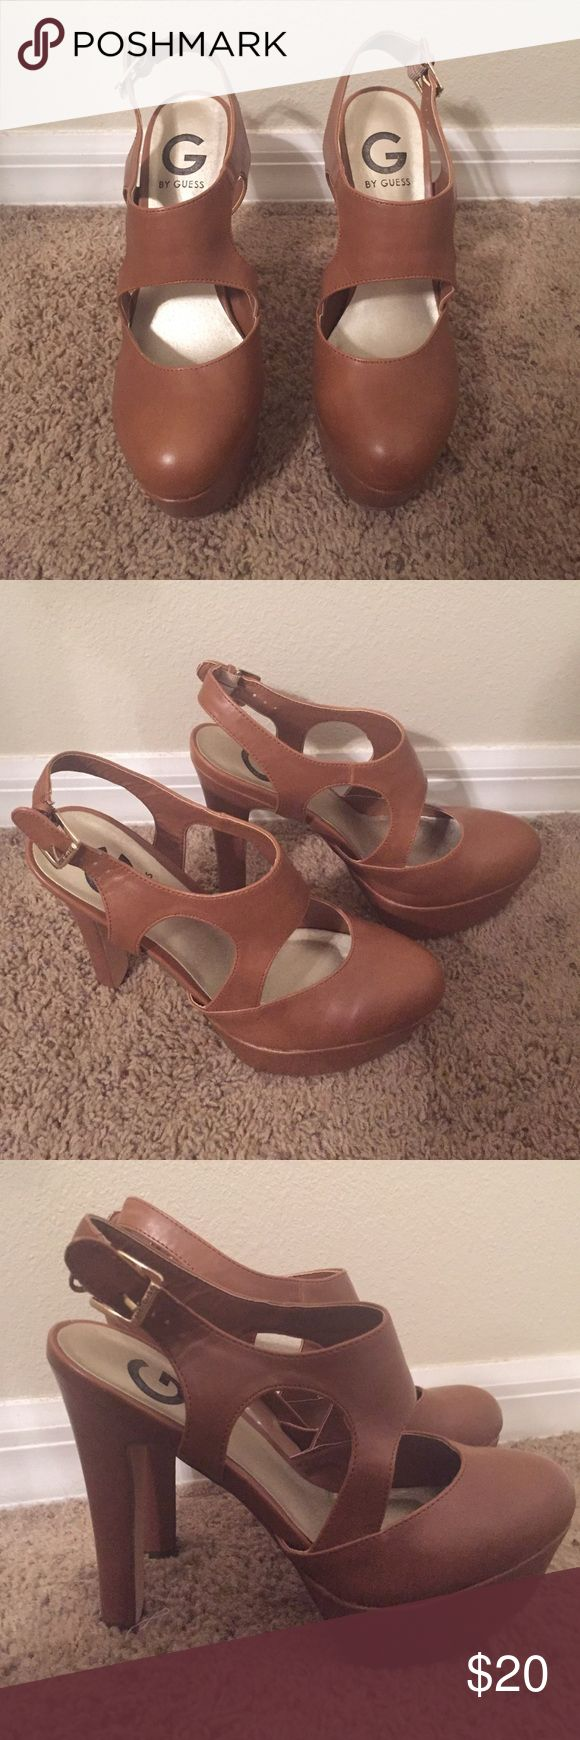 Guess Brown Strappy Heels Never worn! Bought with a some markings and wear on the bottom, but other than that they are in mint condition. G by Guess Shoes Heels